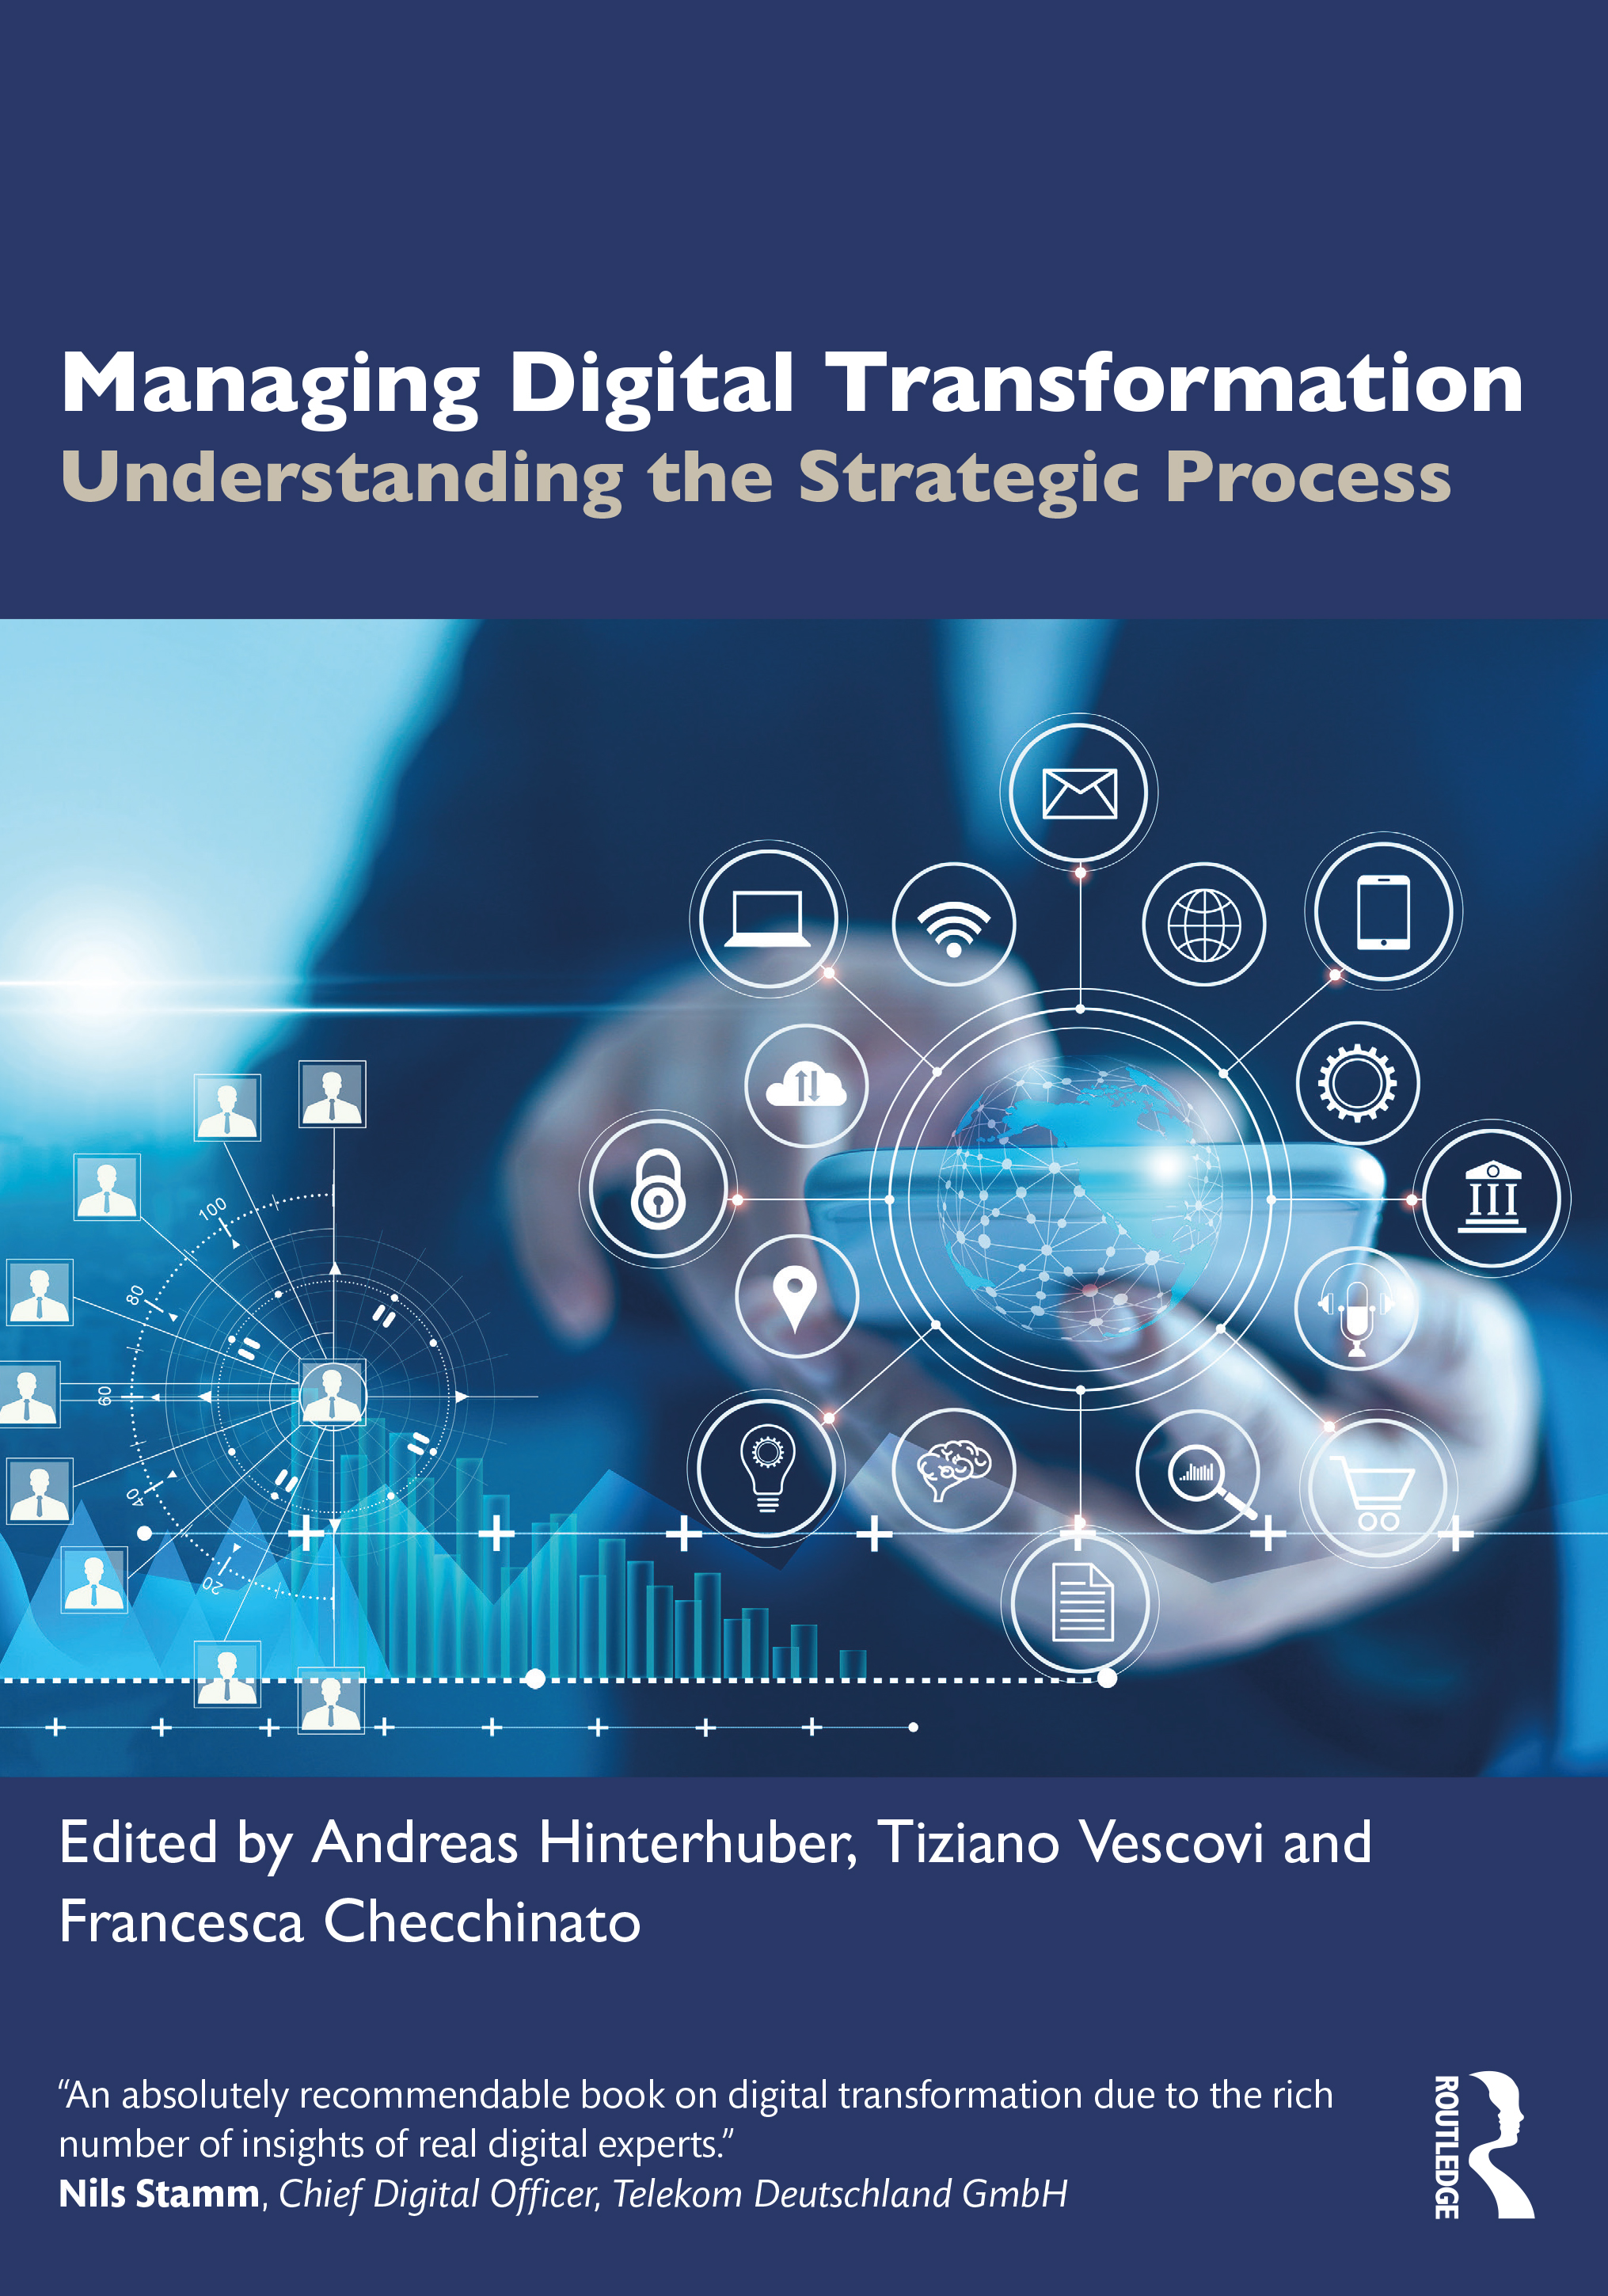 Digital transformation and business models